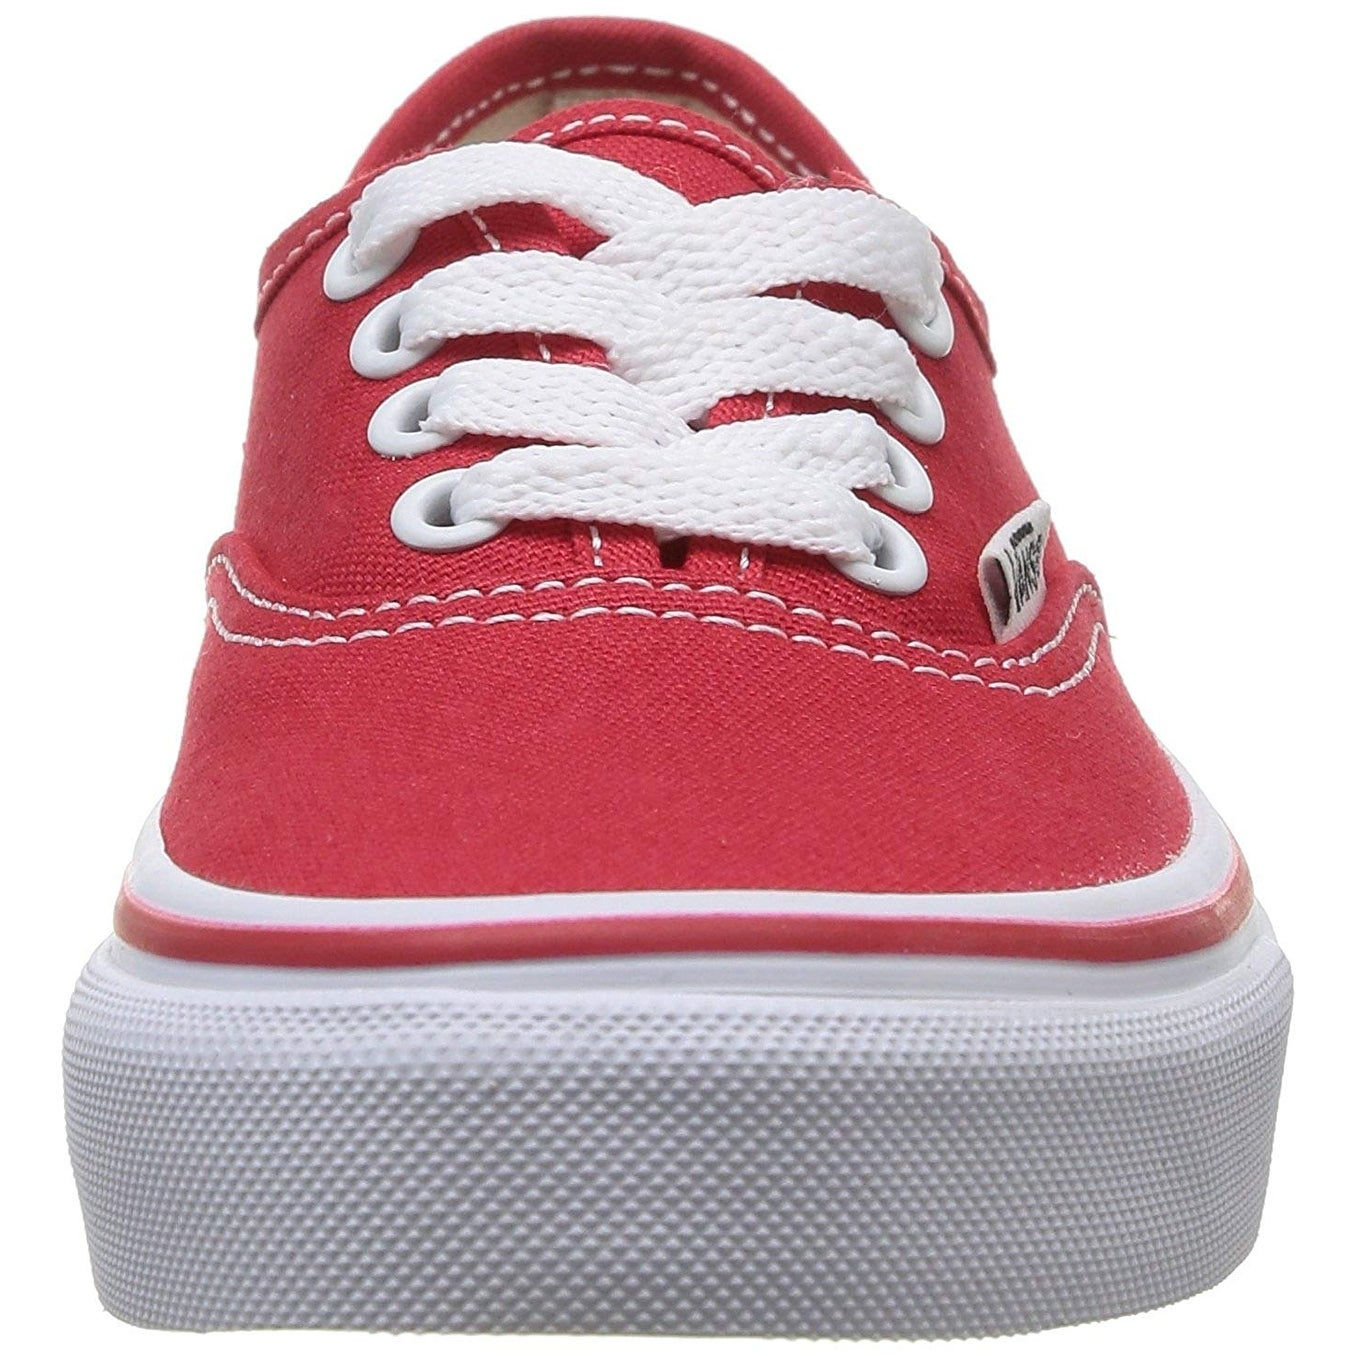 Shop Kids Vans Girls AUTHENTIC Canvas Low Top Lace Up Fashion Sneaker -  Free Shipping On Orders Over  45 - Overstock - 22254056 0705c98932